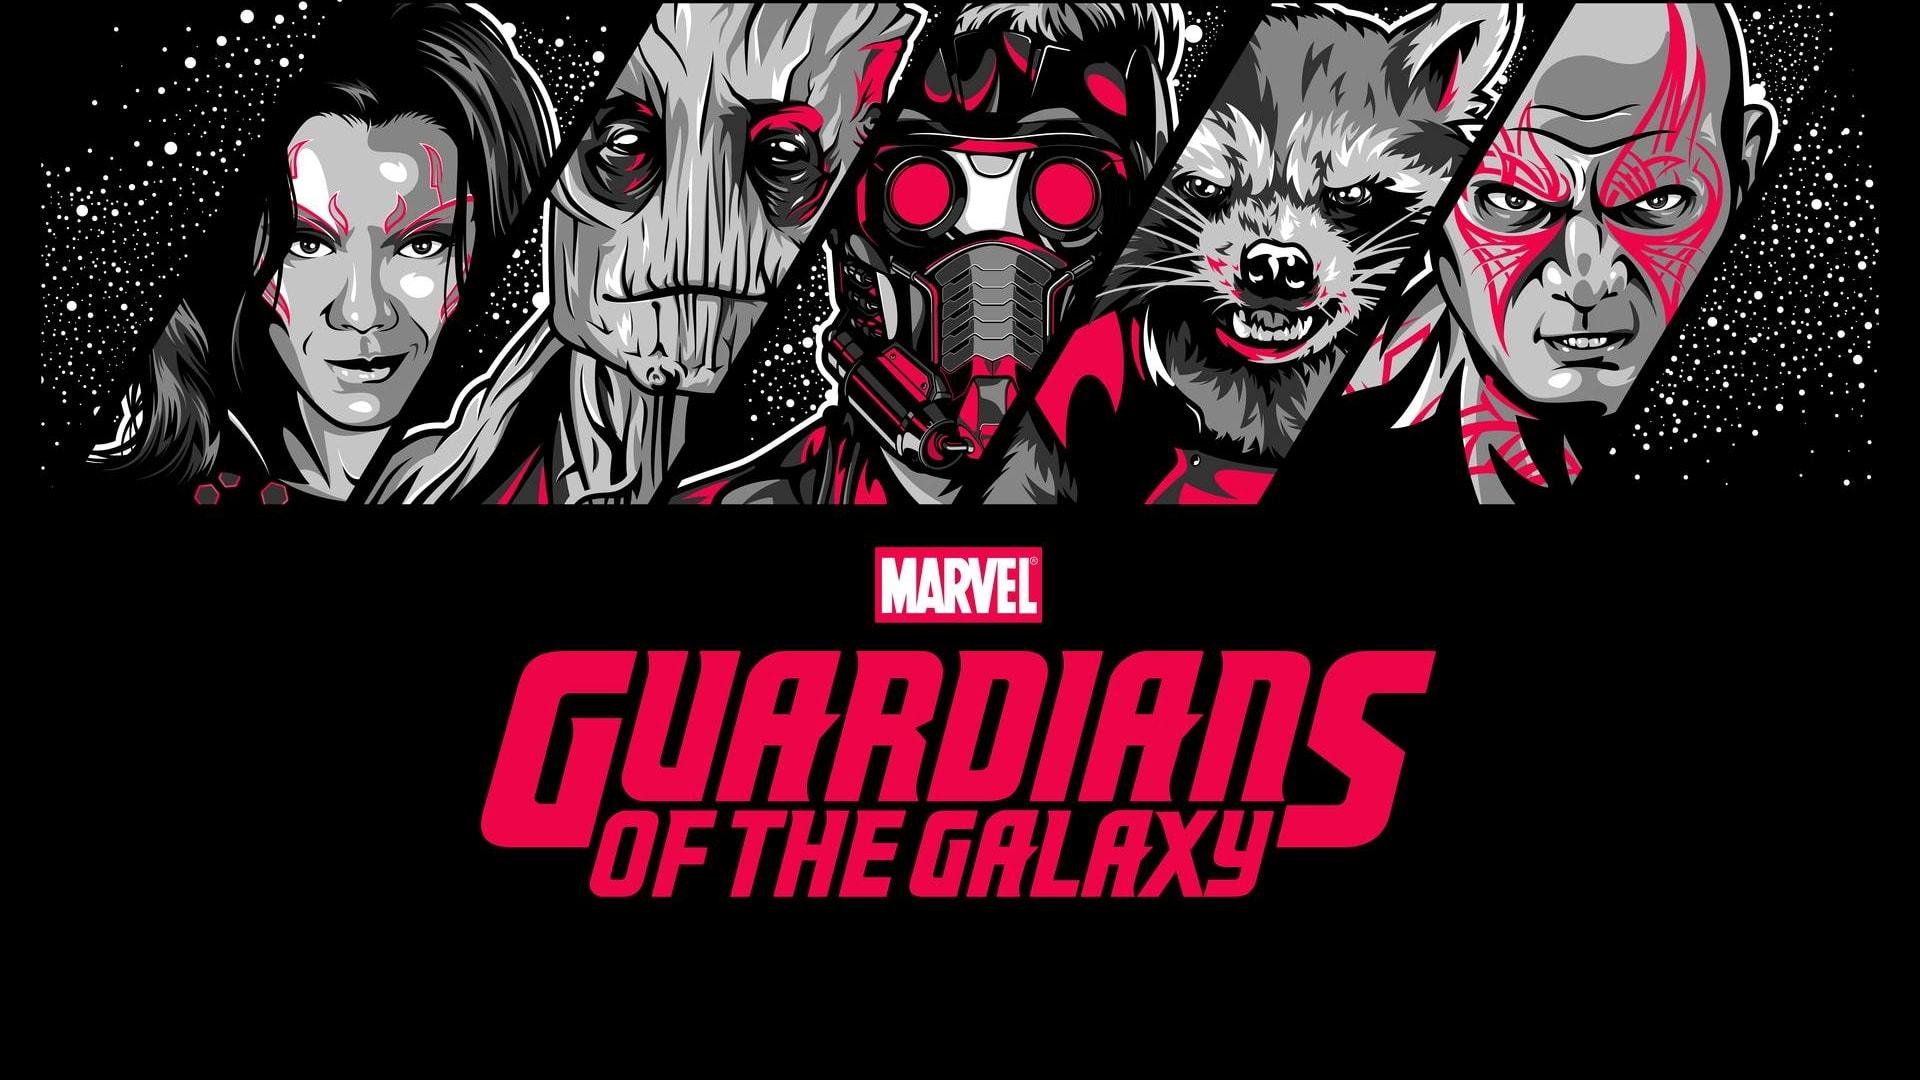 Guardians Of The Galaxy Pictures